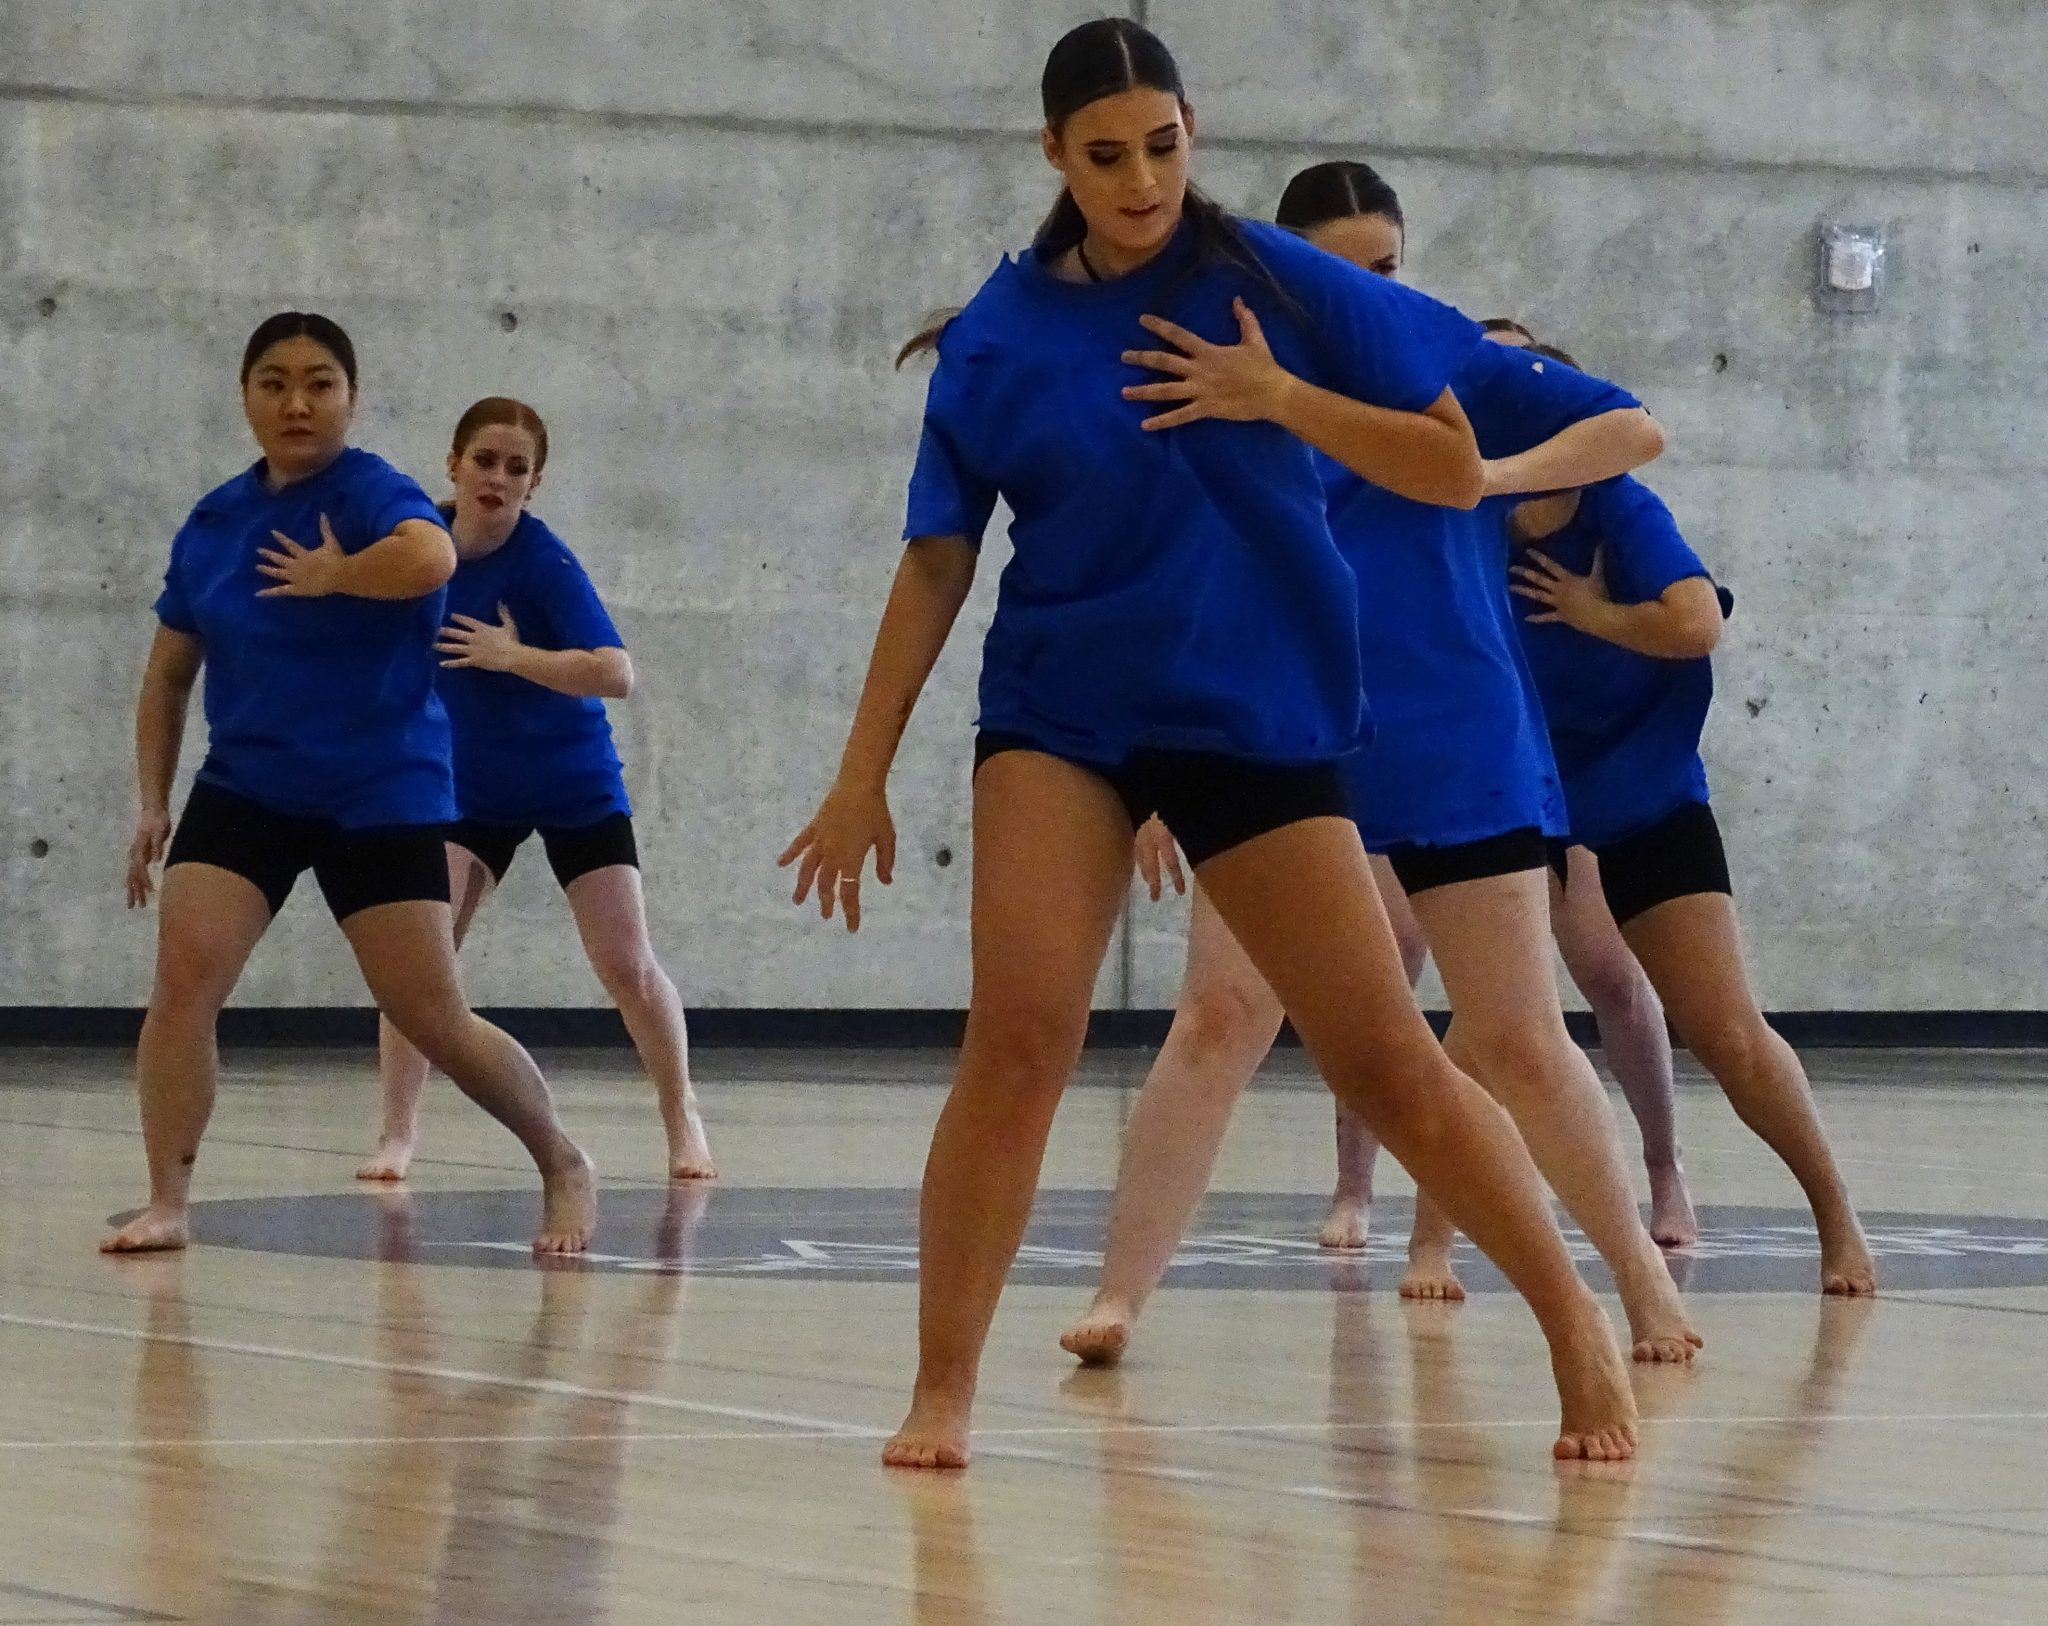 Female dancers in blue t-shirts perform in synchrony.